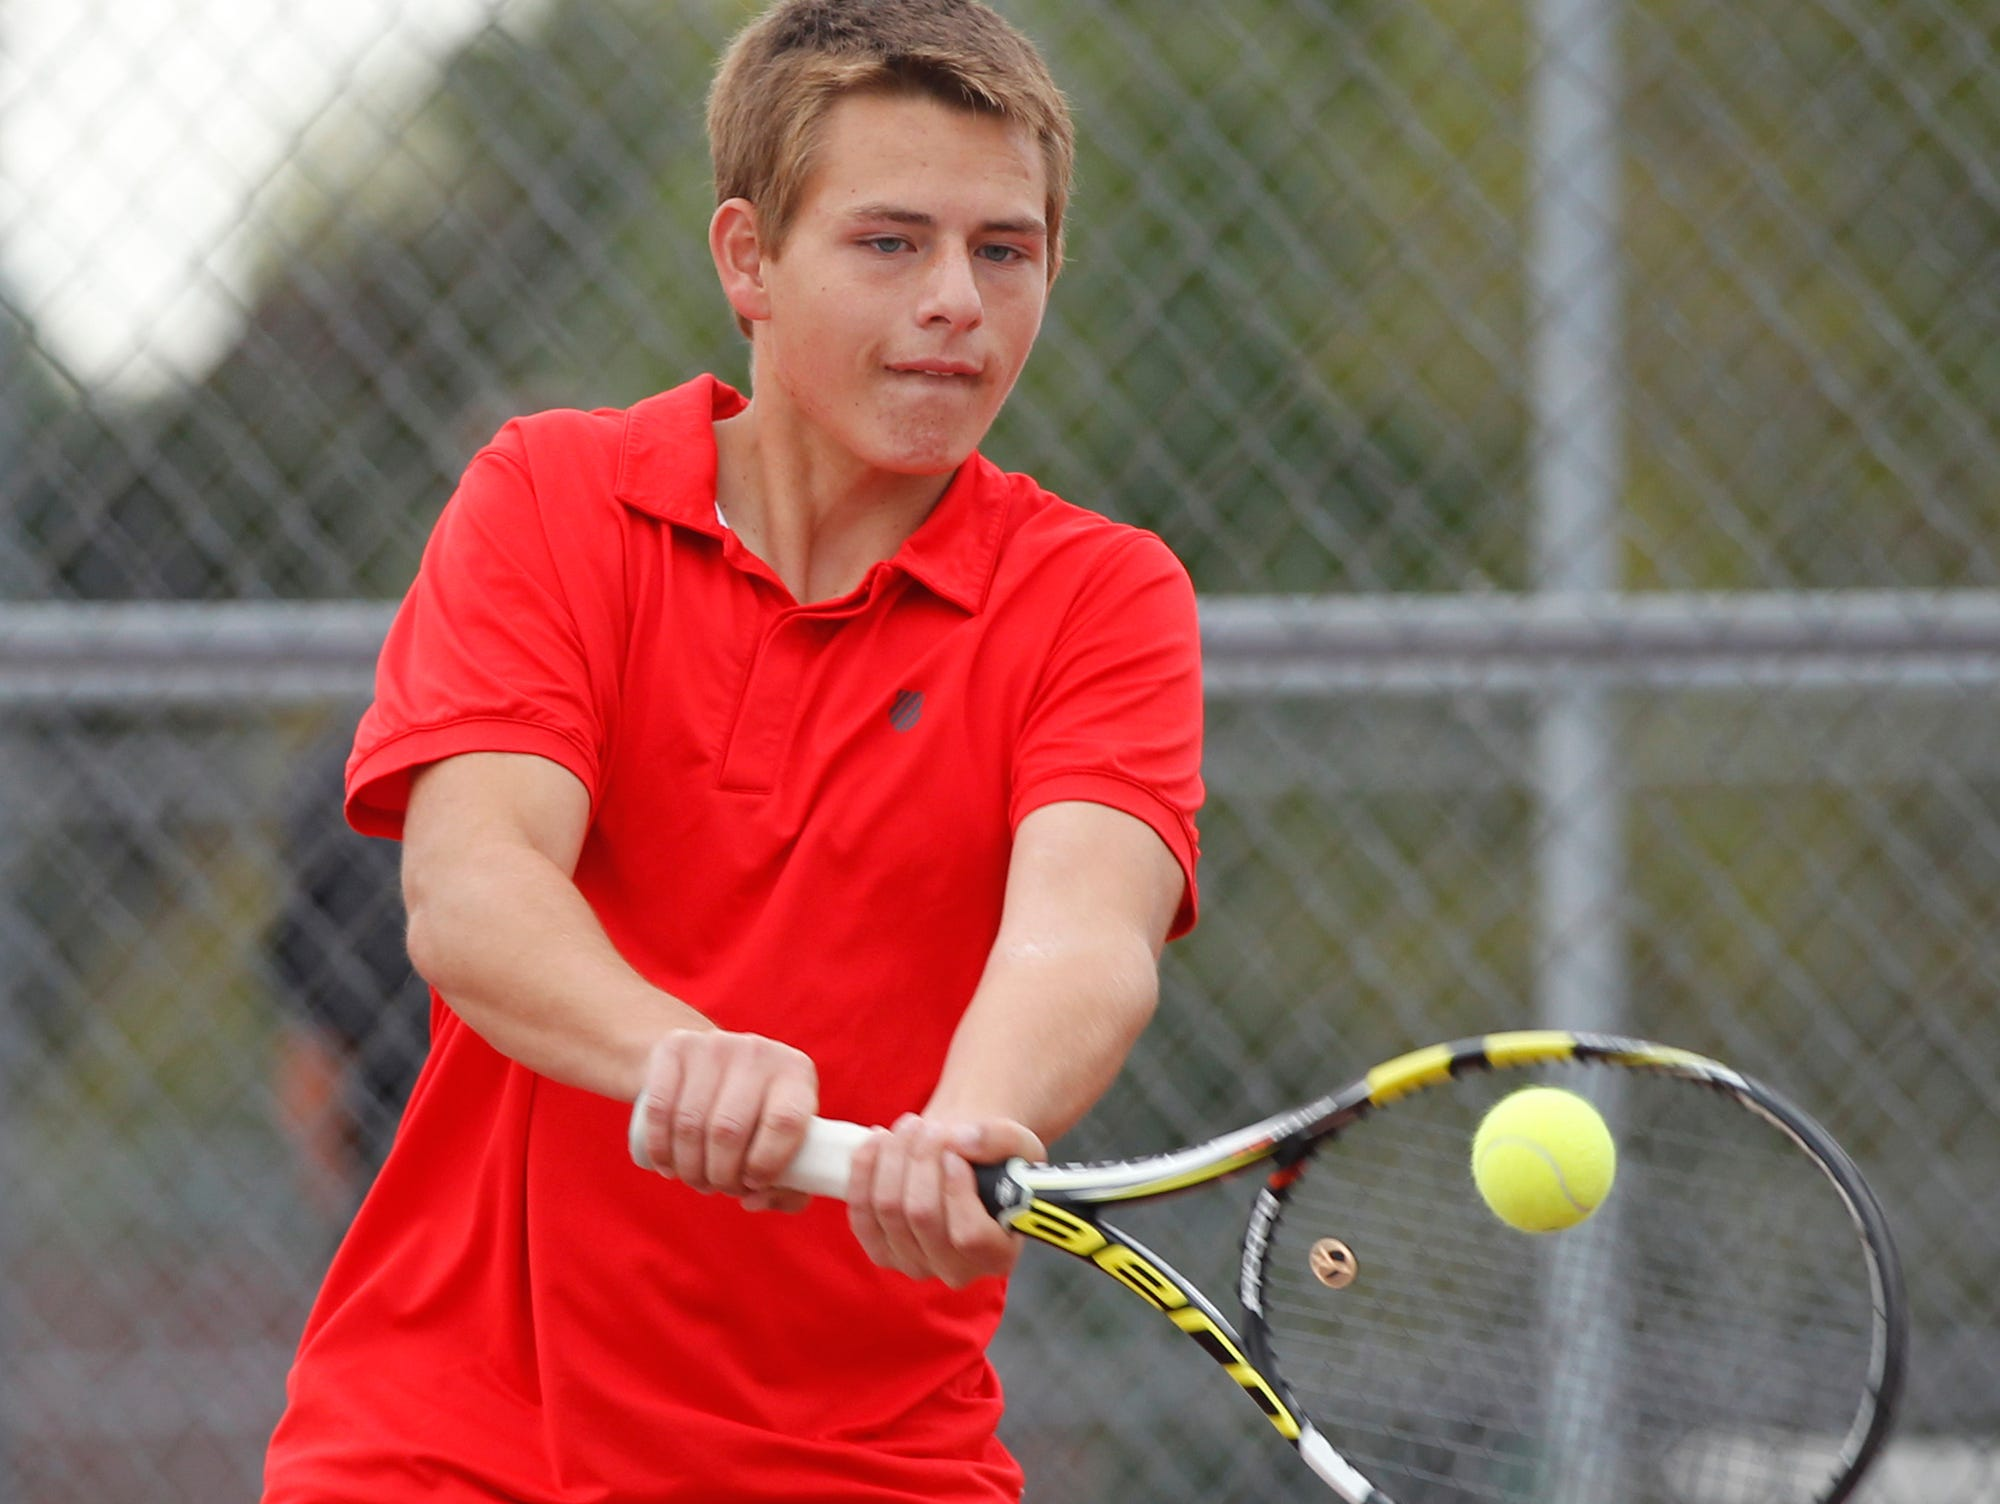 West Lafayette's Eric Malone battles Lafayette Jeff's TJ Preston at No. 3 singles during the boys tennis sectional championship Friday, October 2, 2015, at Cumberland Courts in West Lafayette.